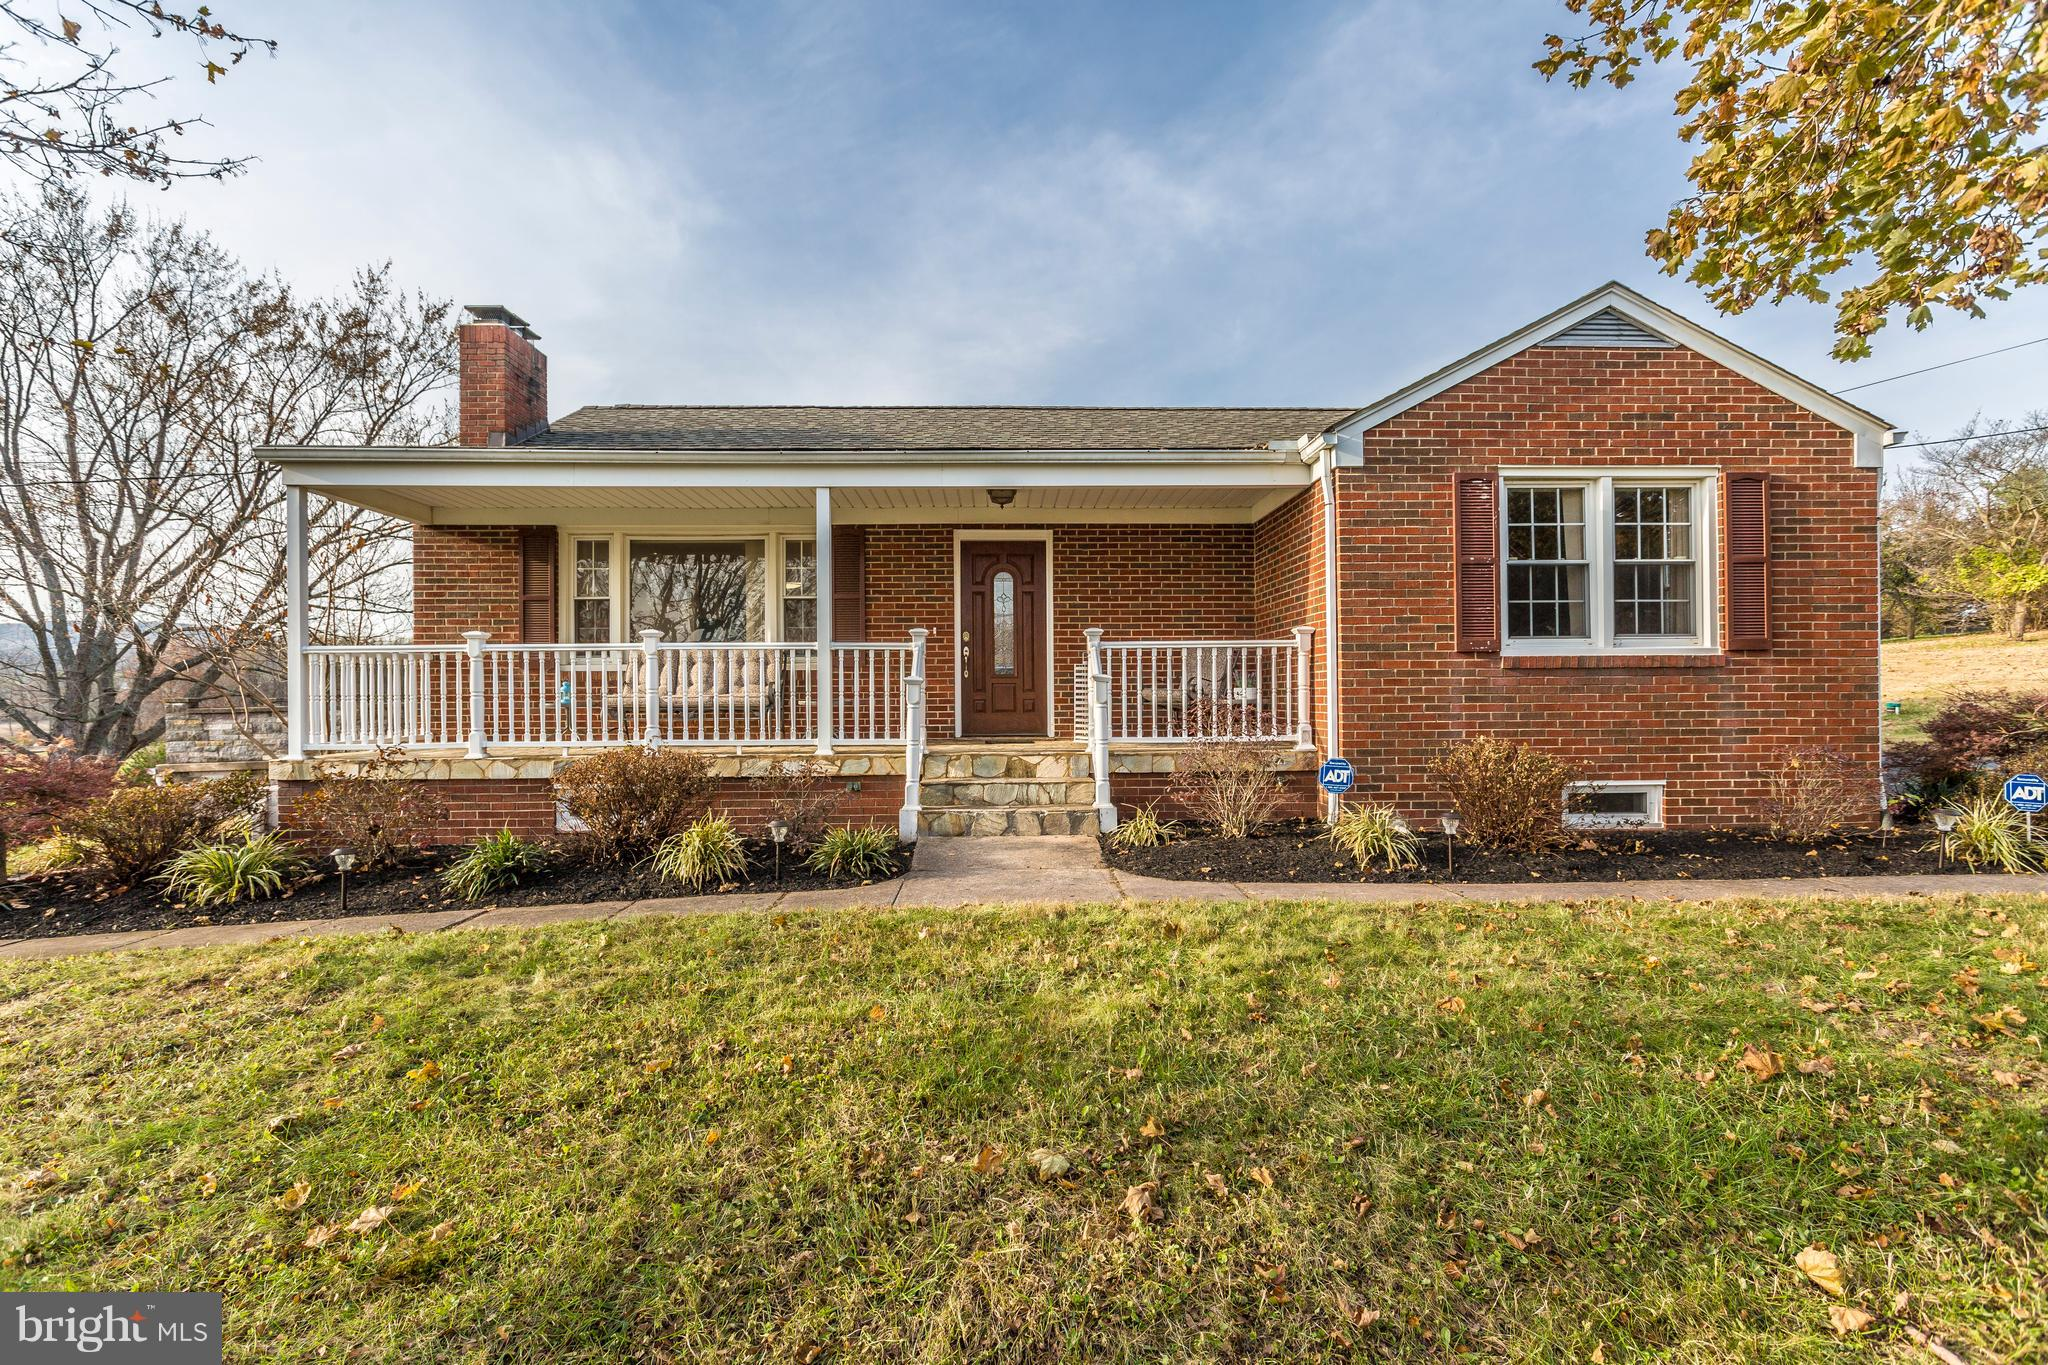 Back on the market! Charming all brick rambler with rear circular drive on 1 acre. Recent renovation